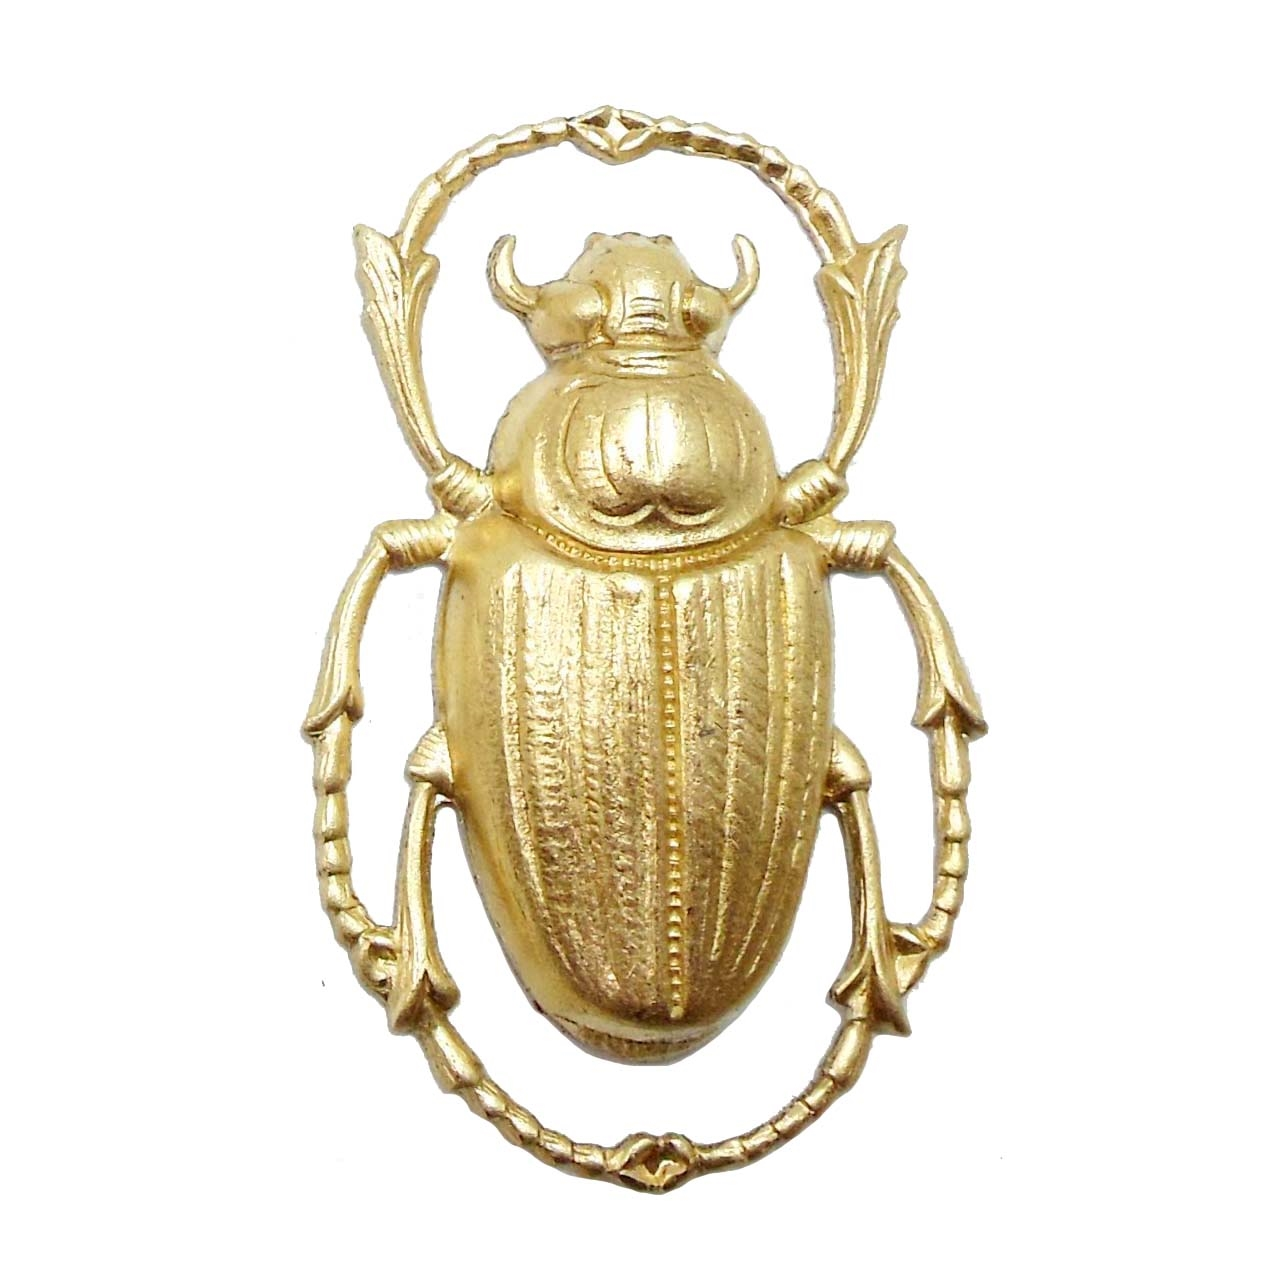 brass beetle, bug jewelry, jewelry supplies, 06271, insect, bugs, beetle, beetles, scarab, animals